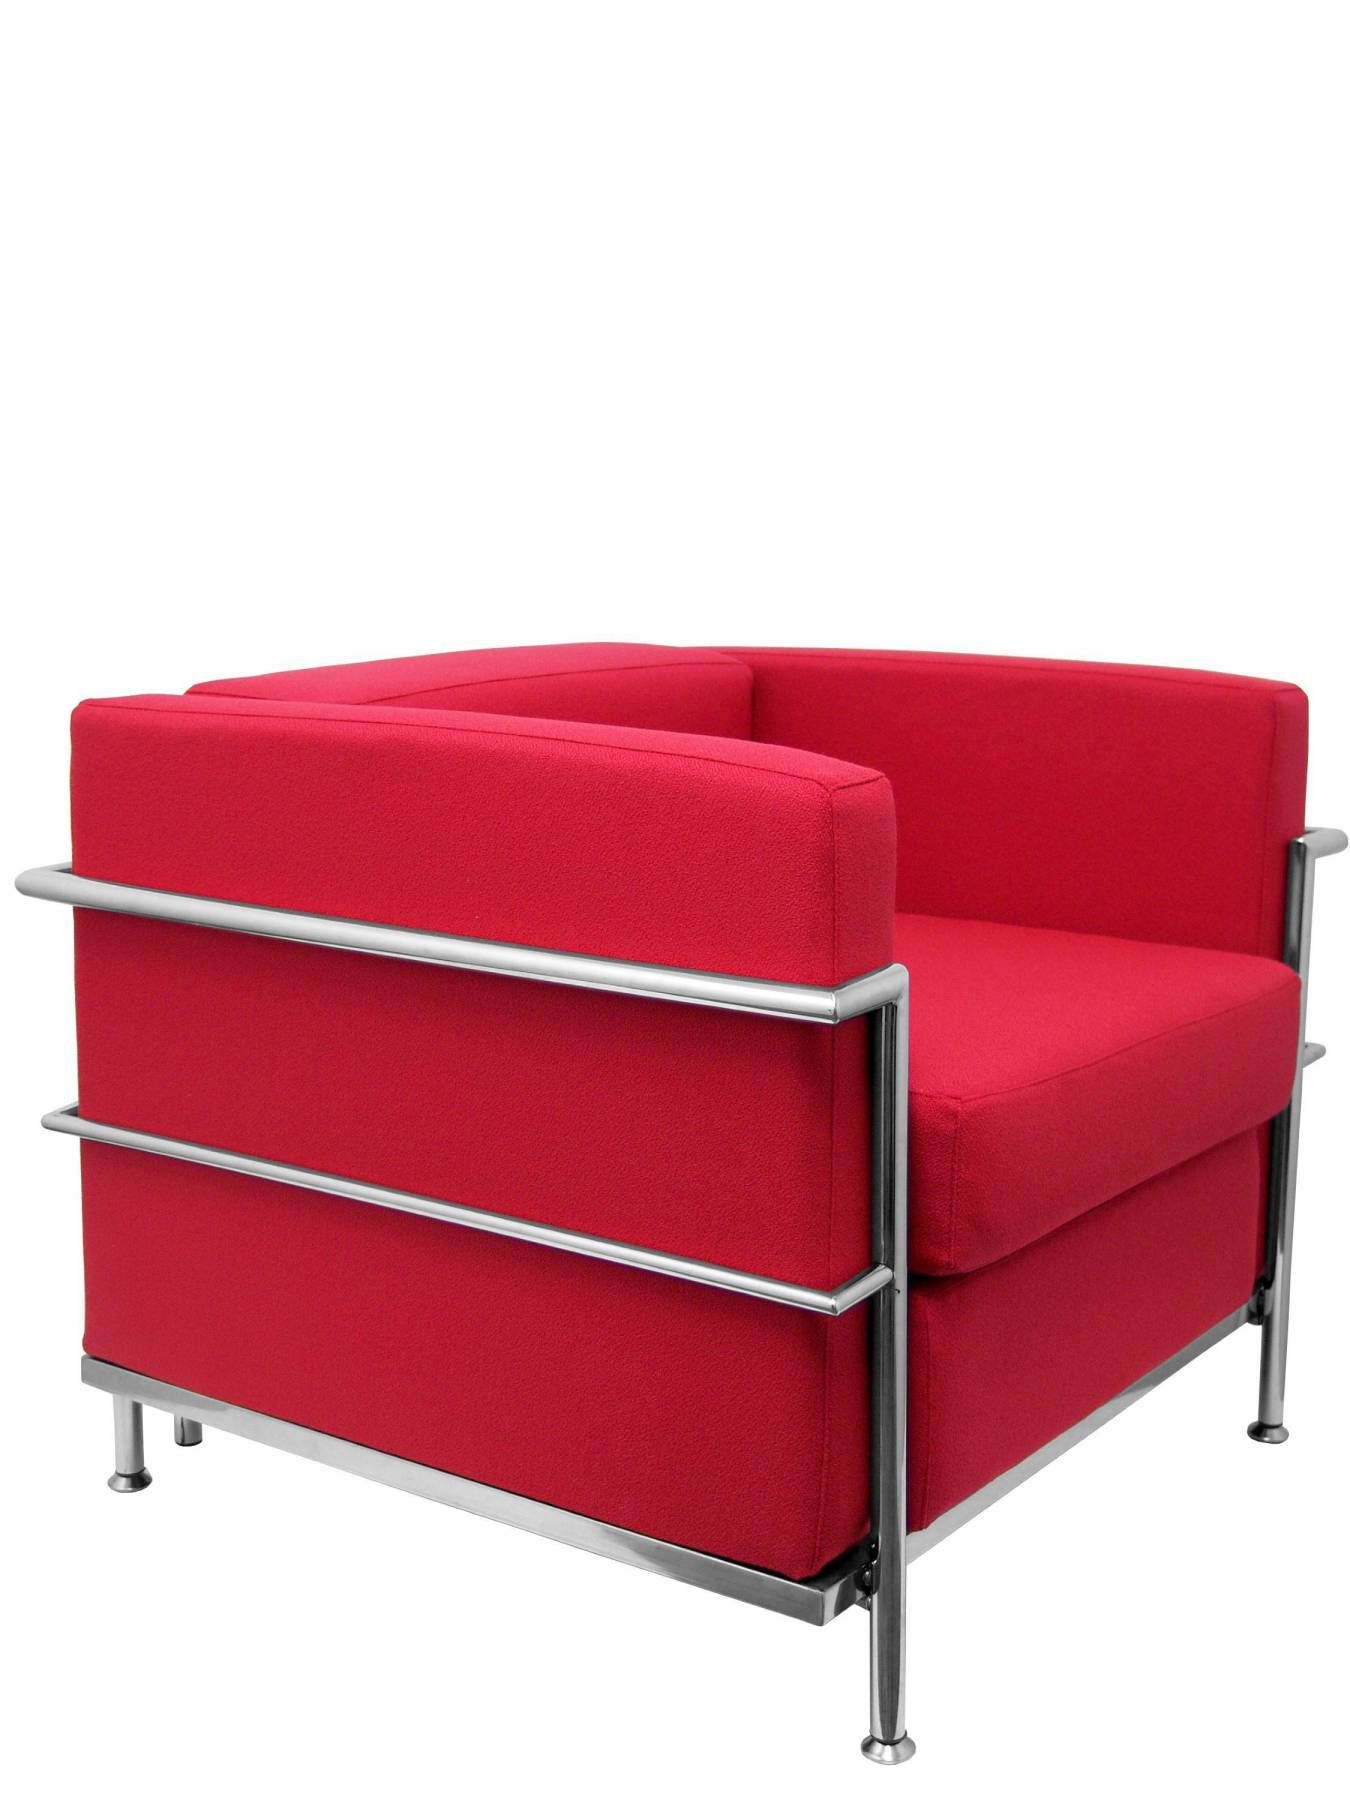 Sofa De Modulo/waiting One Square-Upholstered In BALI Tissue Red Color TAPHOLE AND CURLED Model Nerpio